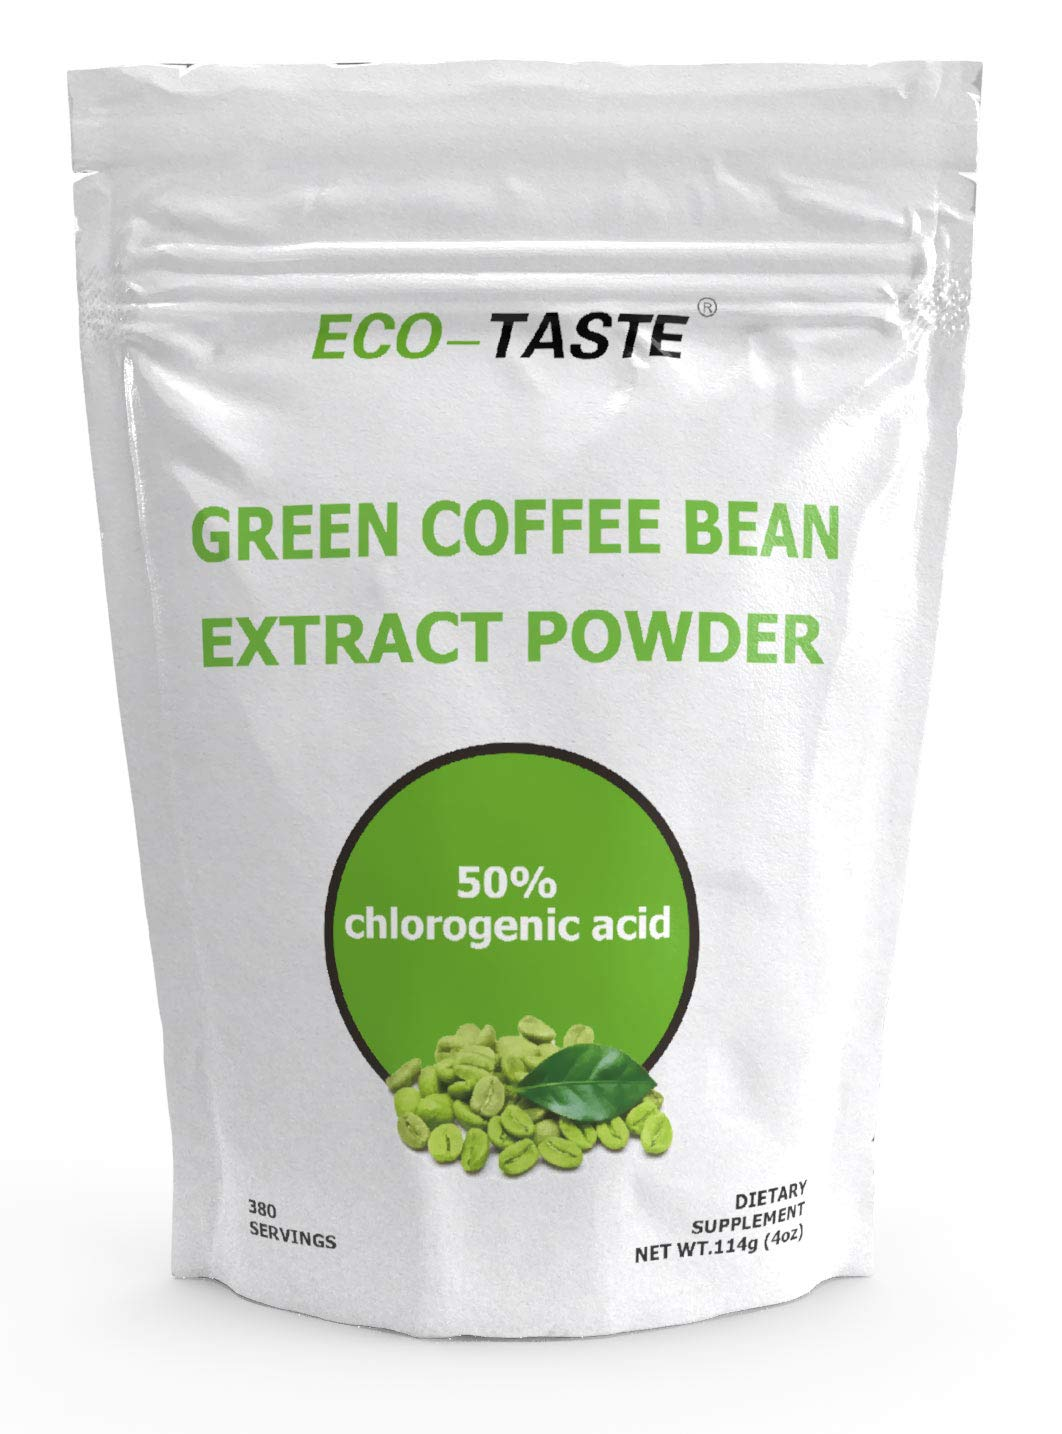 Green Coffee Bean Extract Powder For Improved Metabolism And Fat